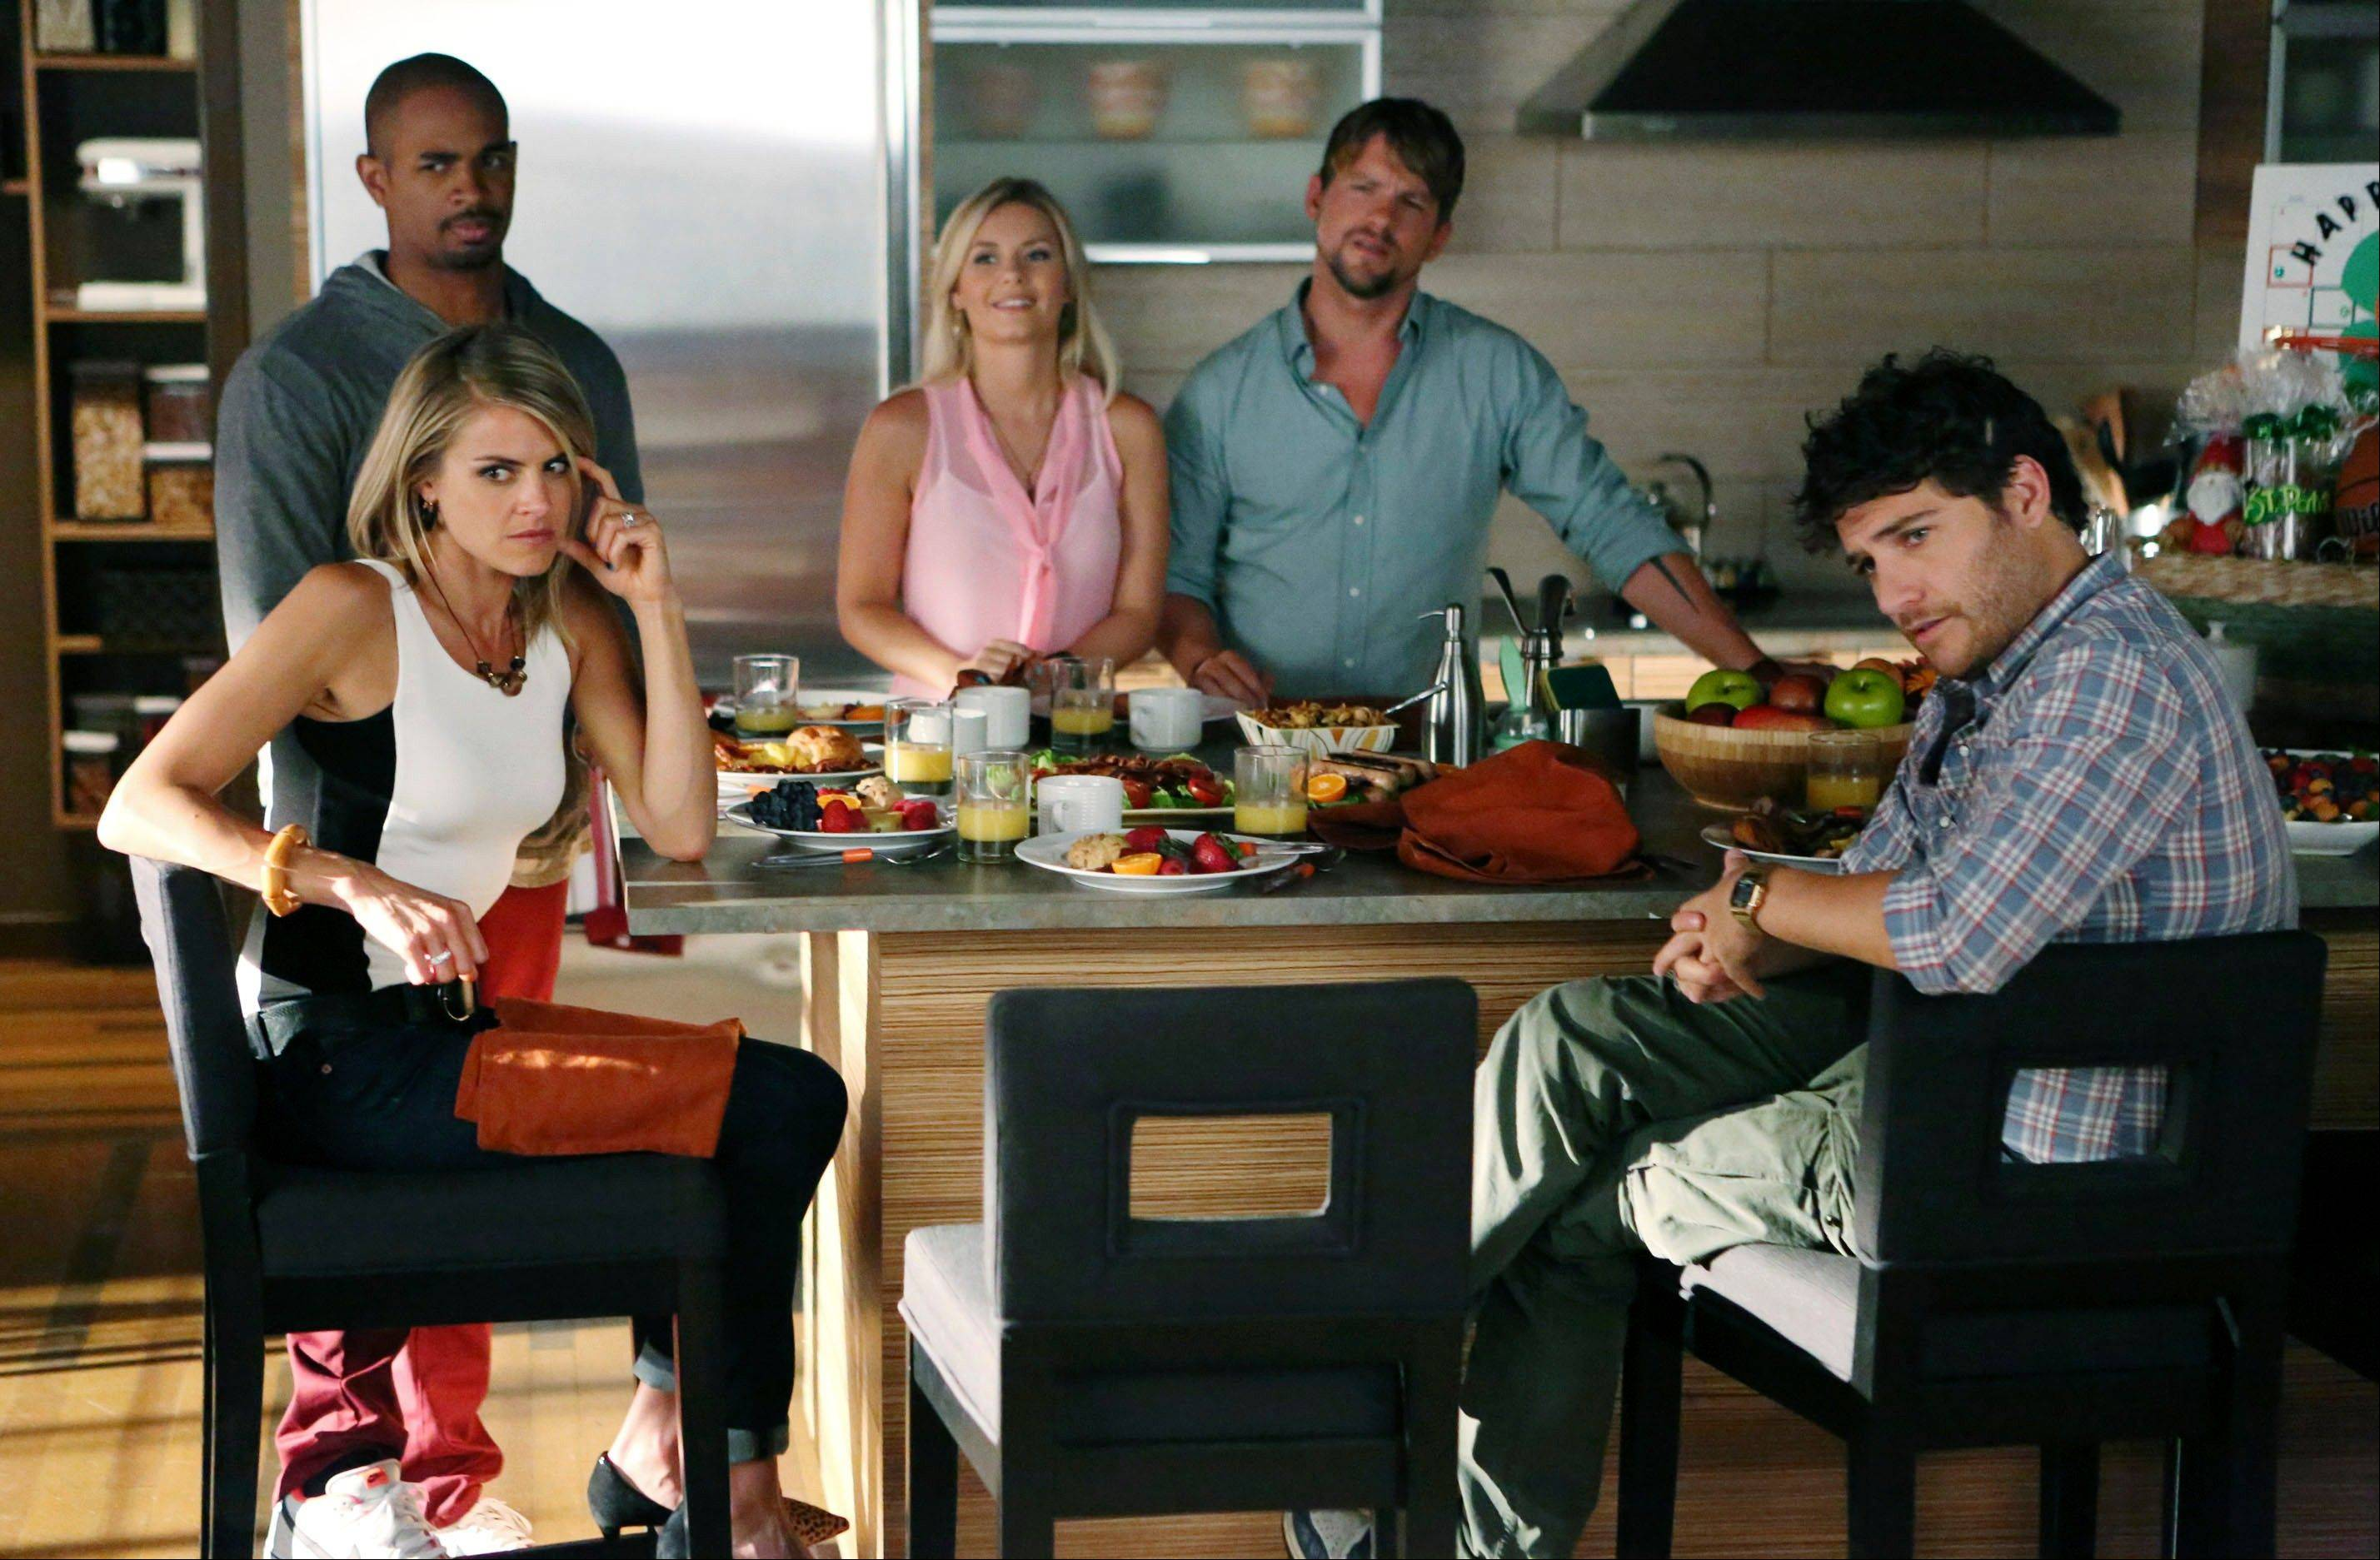 The new season of ABC�s �Happy Endings� � starring Eliza Coupe, left, Damon Wayans Jr., Elisha Cuthbert, Zachary Knighton and Adam Pally � premieres at 8 p.m. Tuesday, Oct. 23.